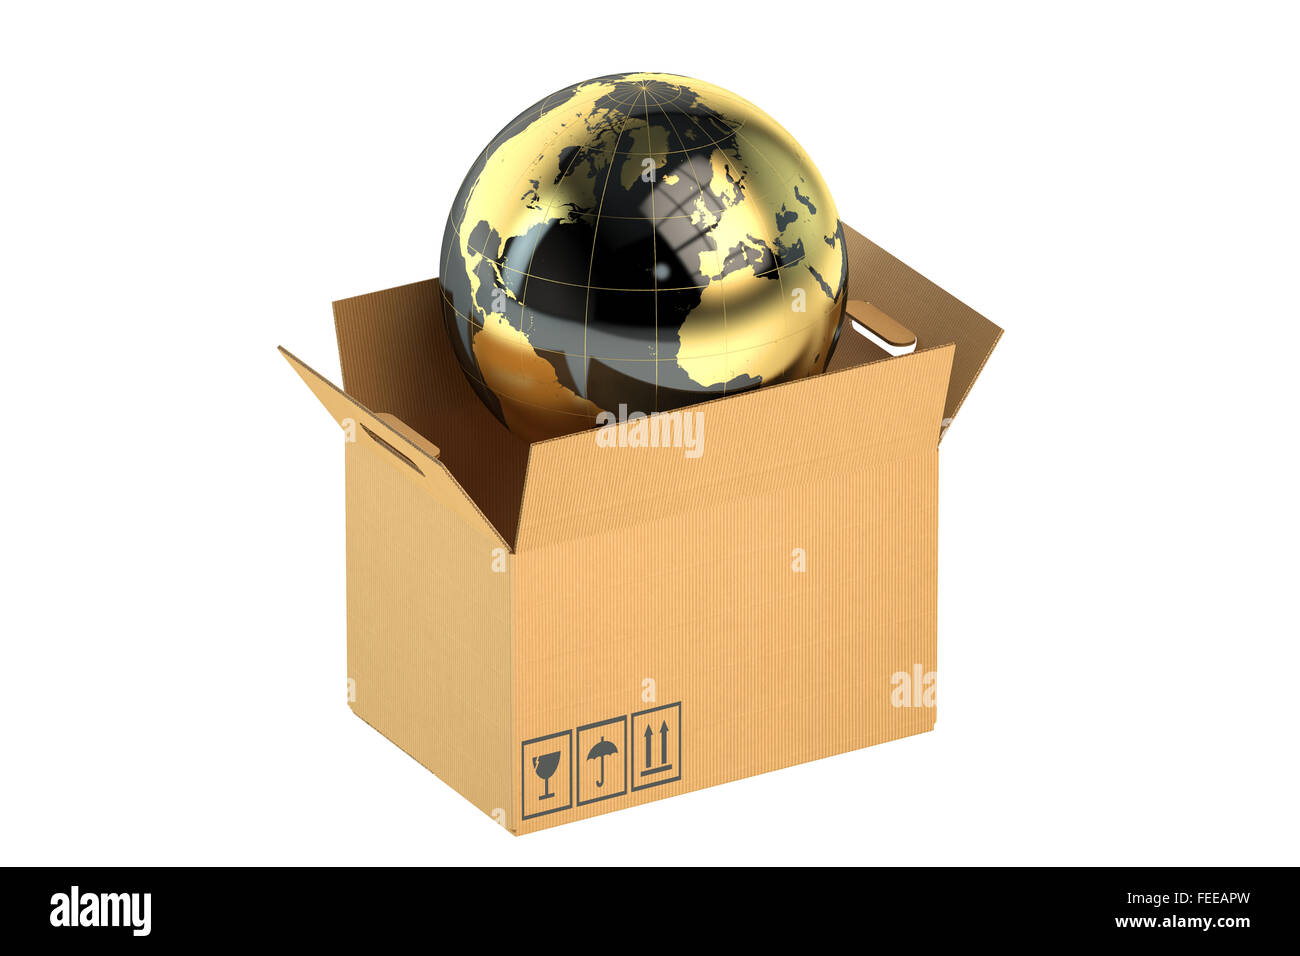 Global Delivery Stock Photos & Global Delivery Stock Images - Alamy